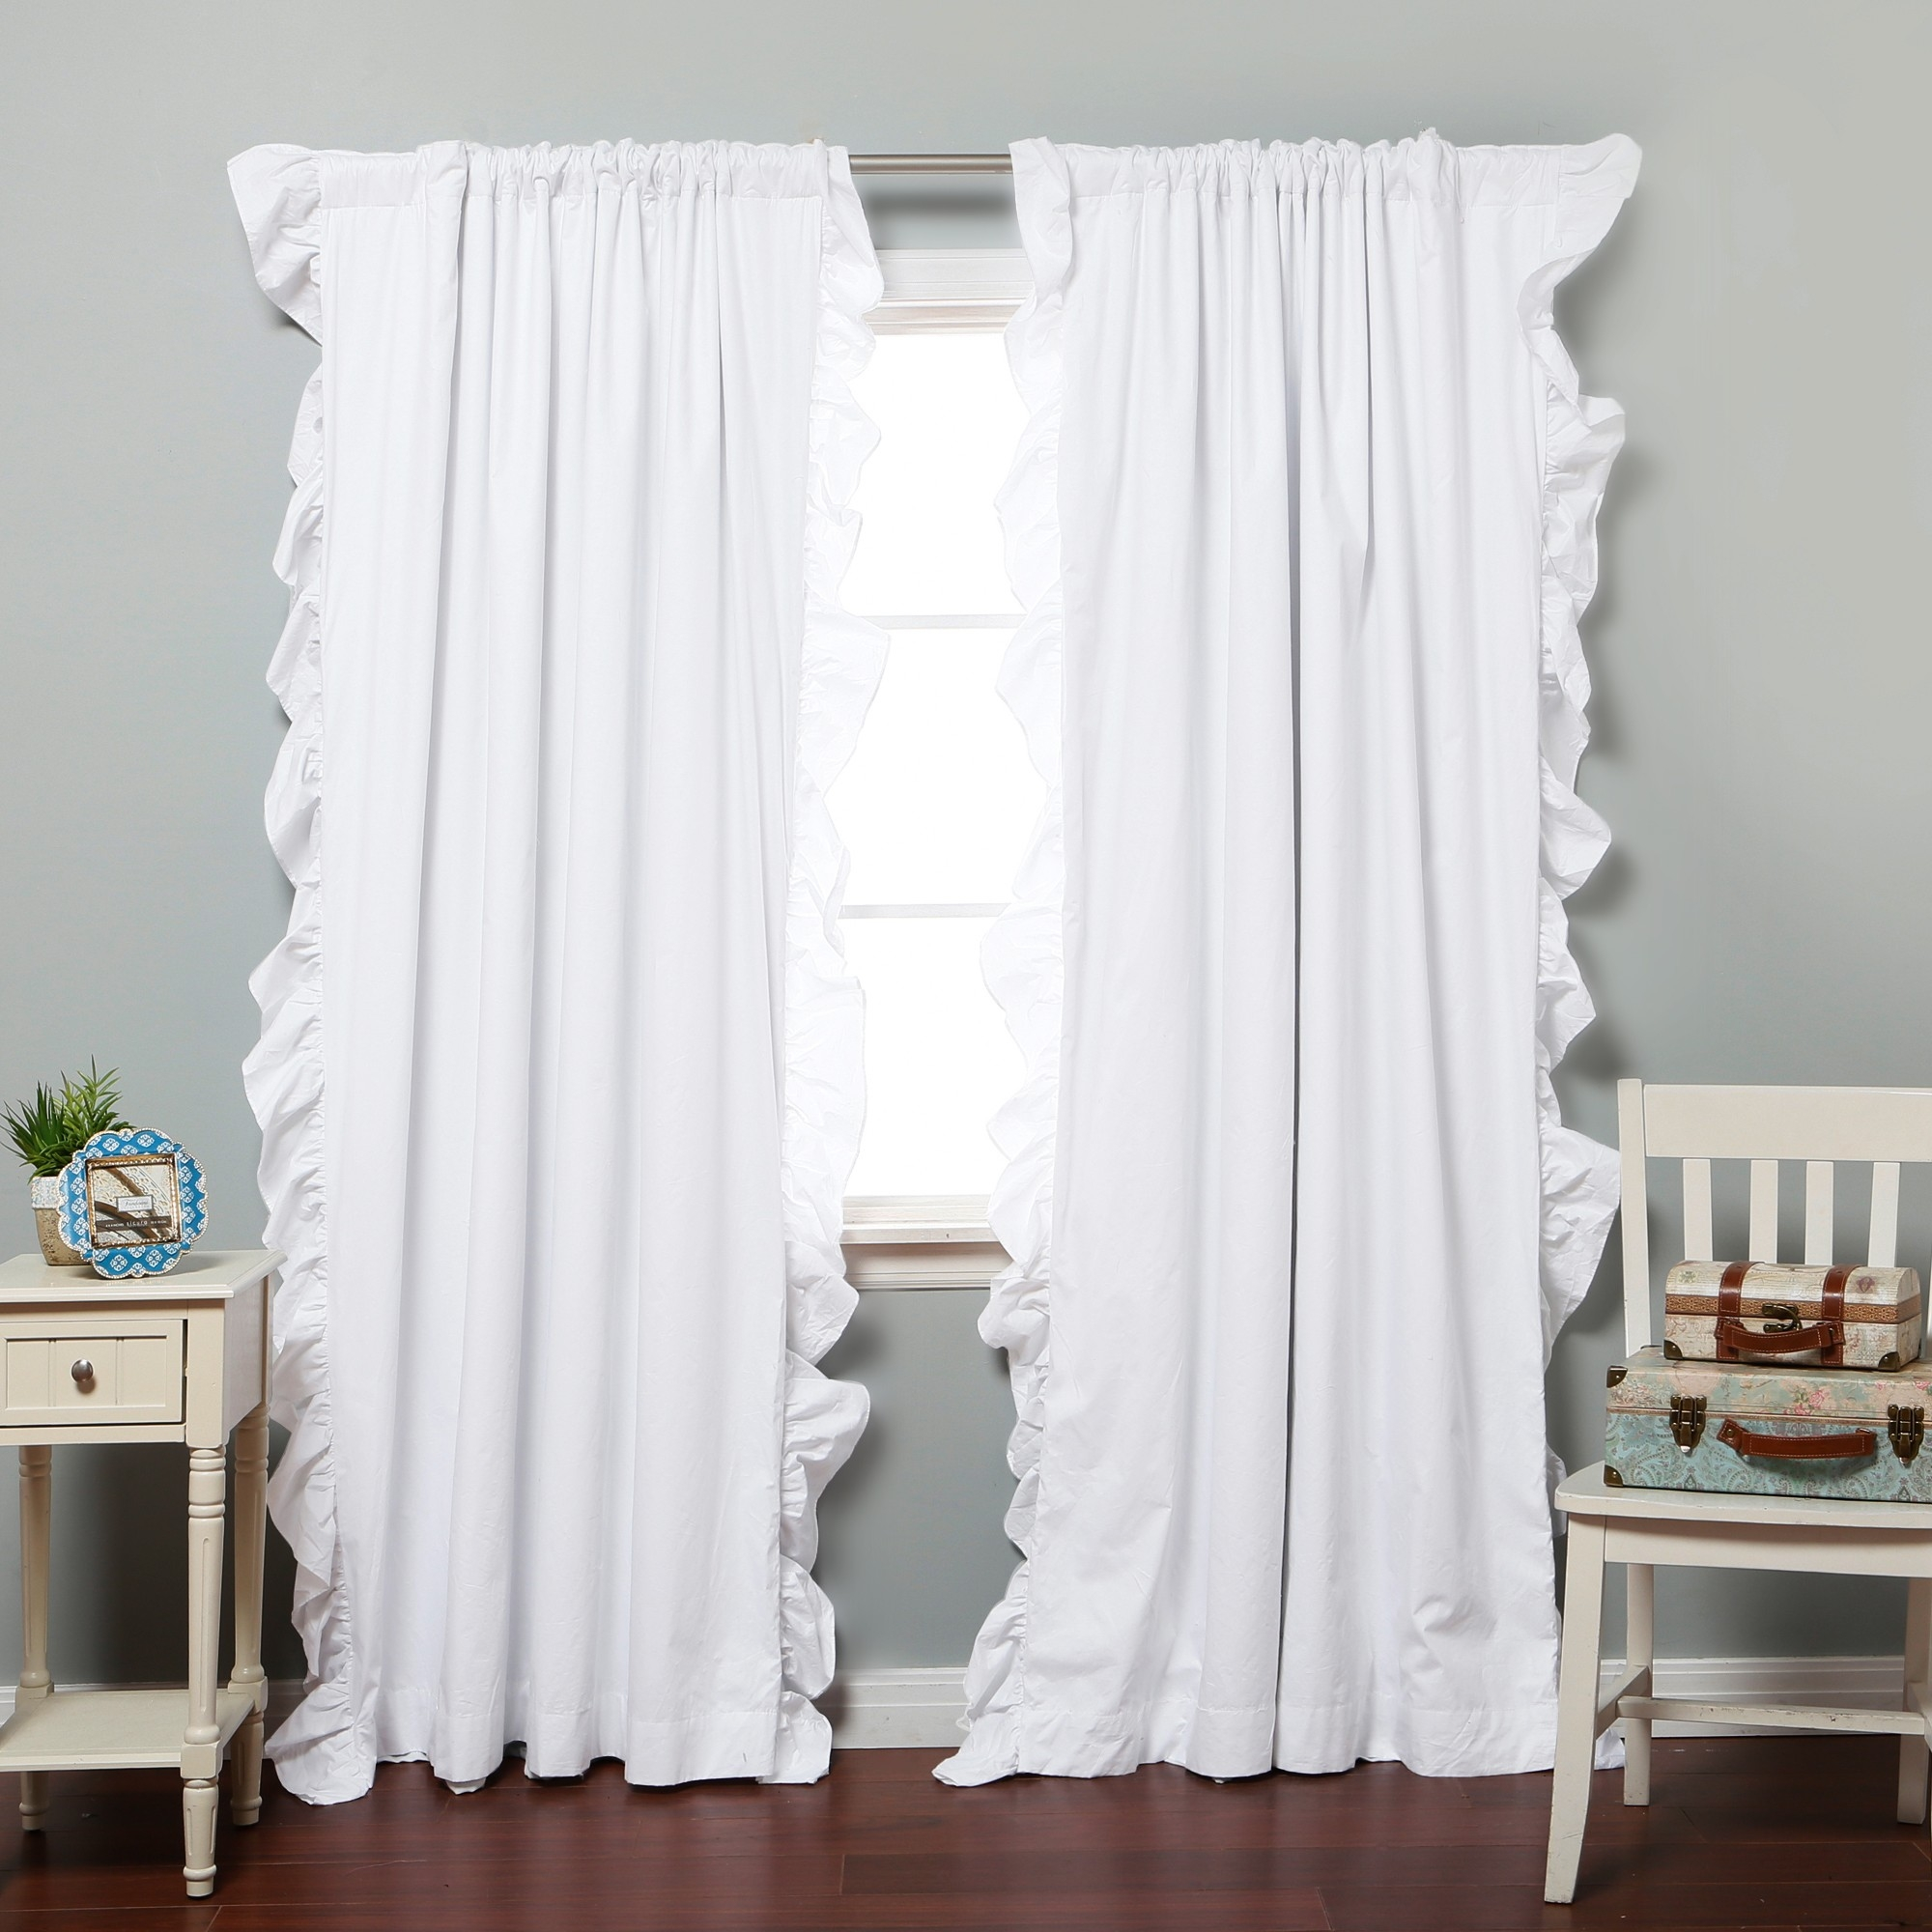 Wonderful Blackout Curtains Target For Home Decoration Ideas Pertaining To Plain White Blackout Curtains (Image 15 of 15)